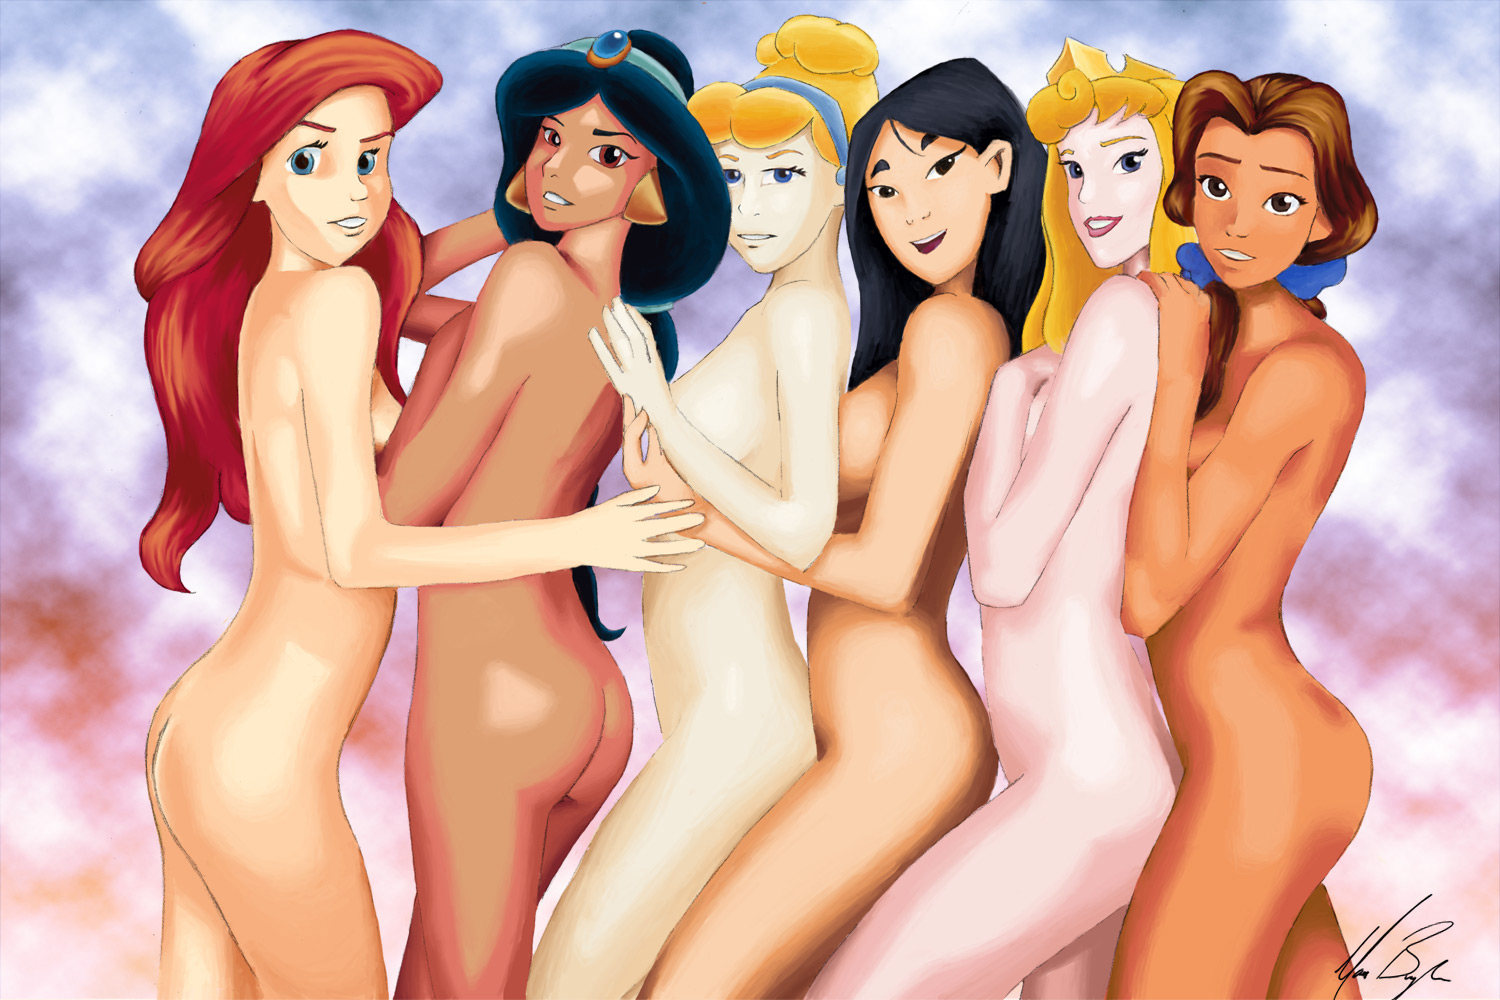 mulan and alice porn disney aladdin nude jasmine home ariel little